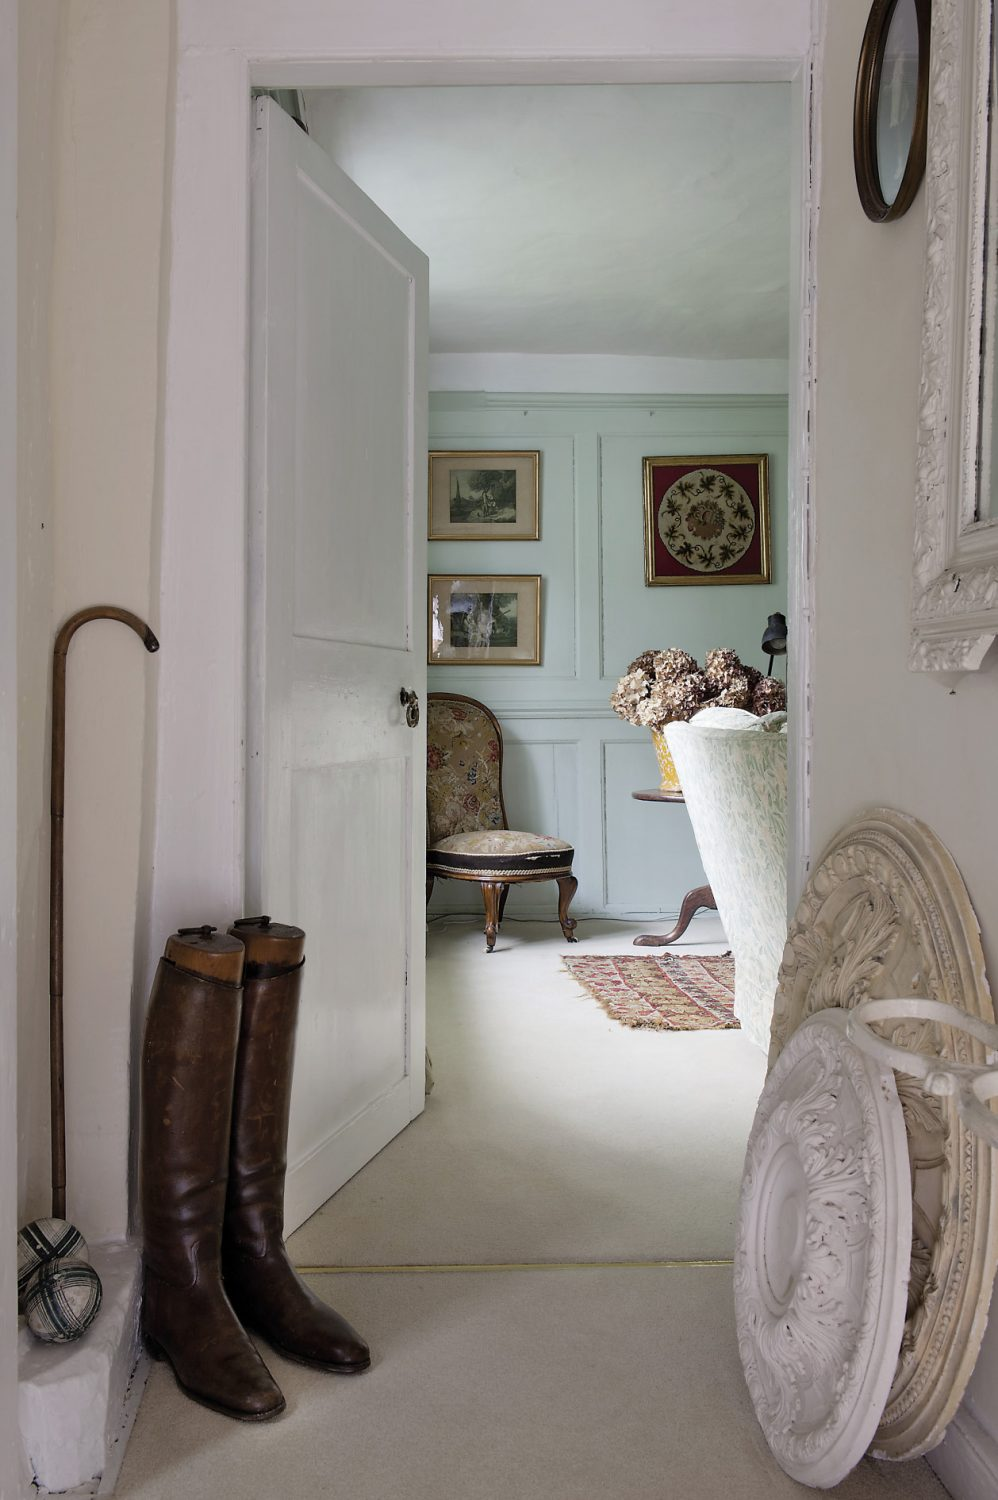 A corridor leading off from one corner of the sitting room leads to a more formal drawing room, its panelled walls decorated in a soft eau de nil